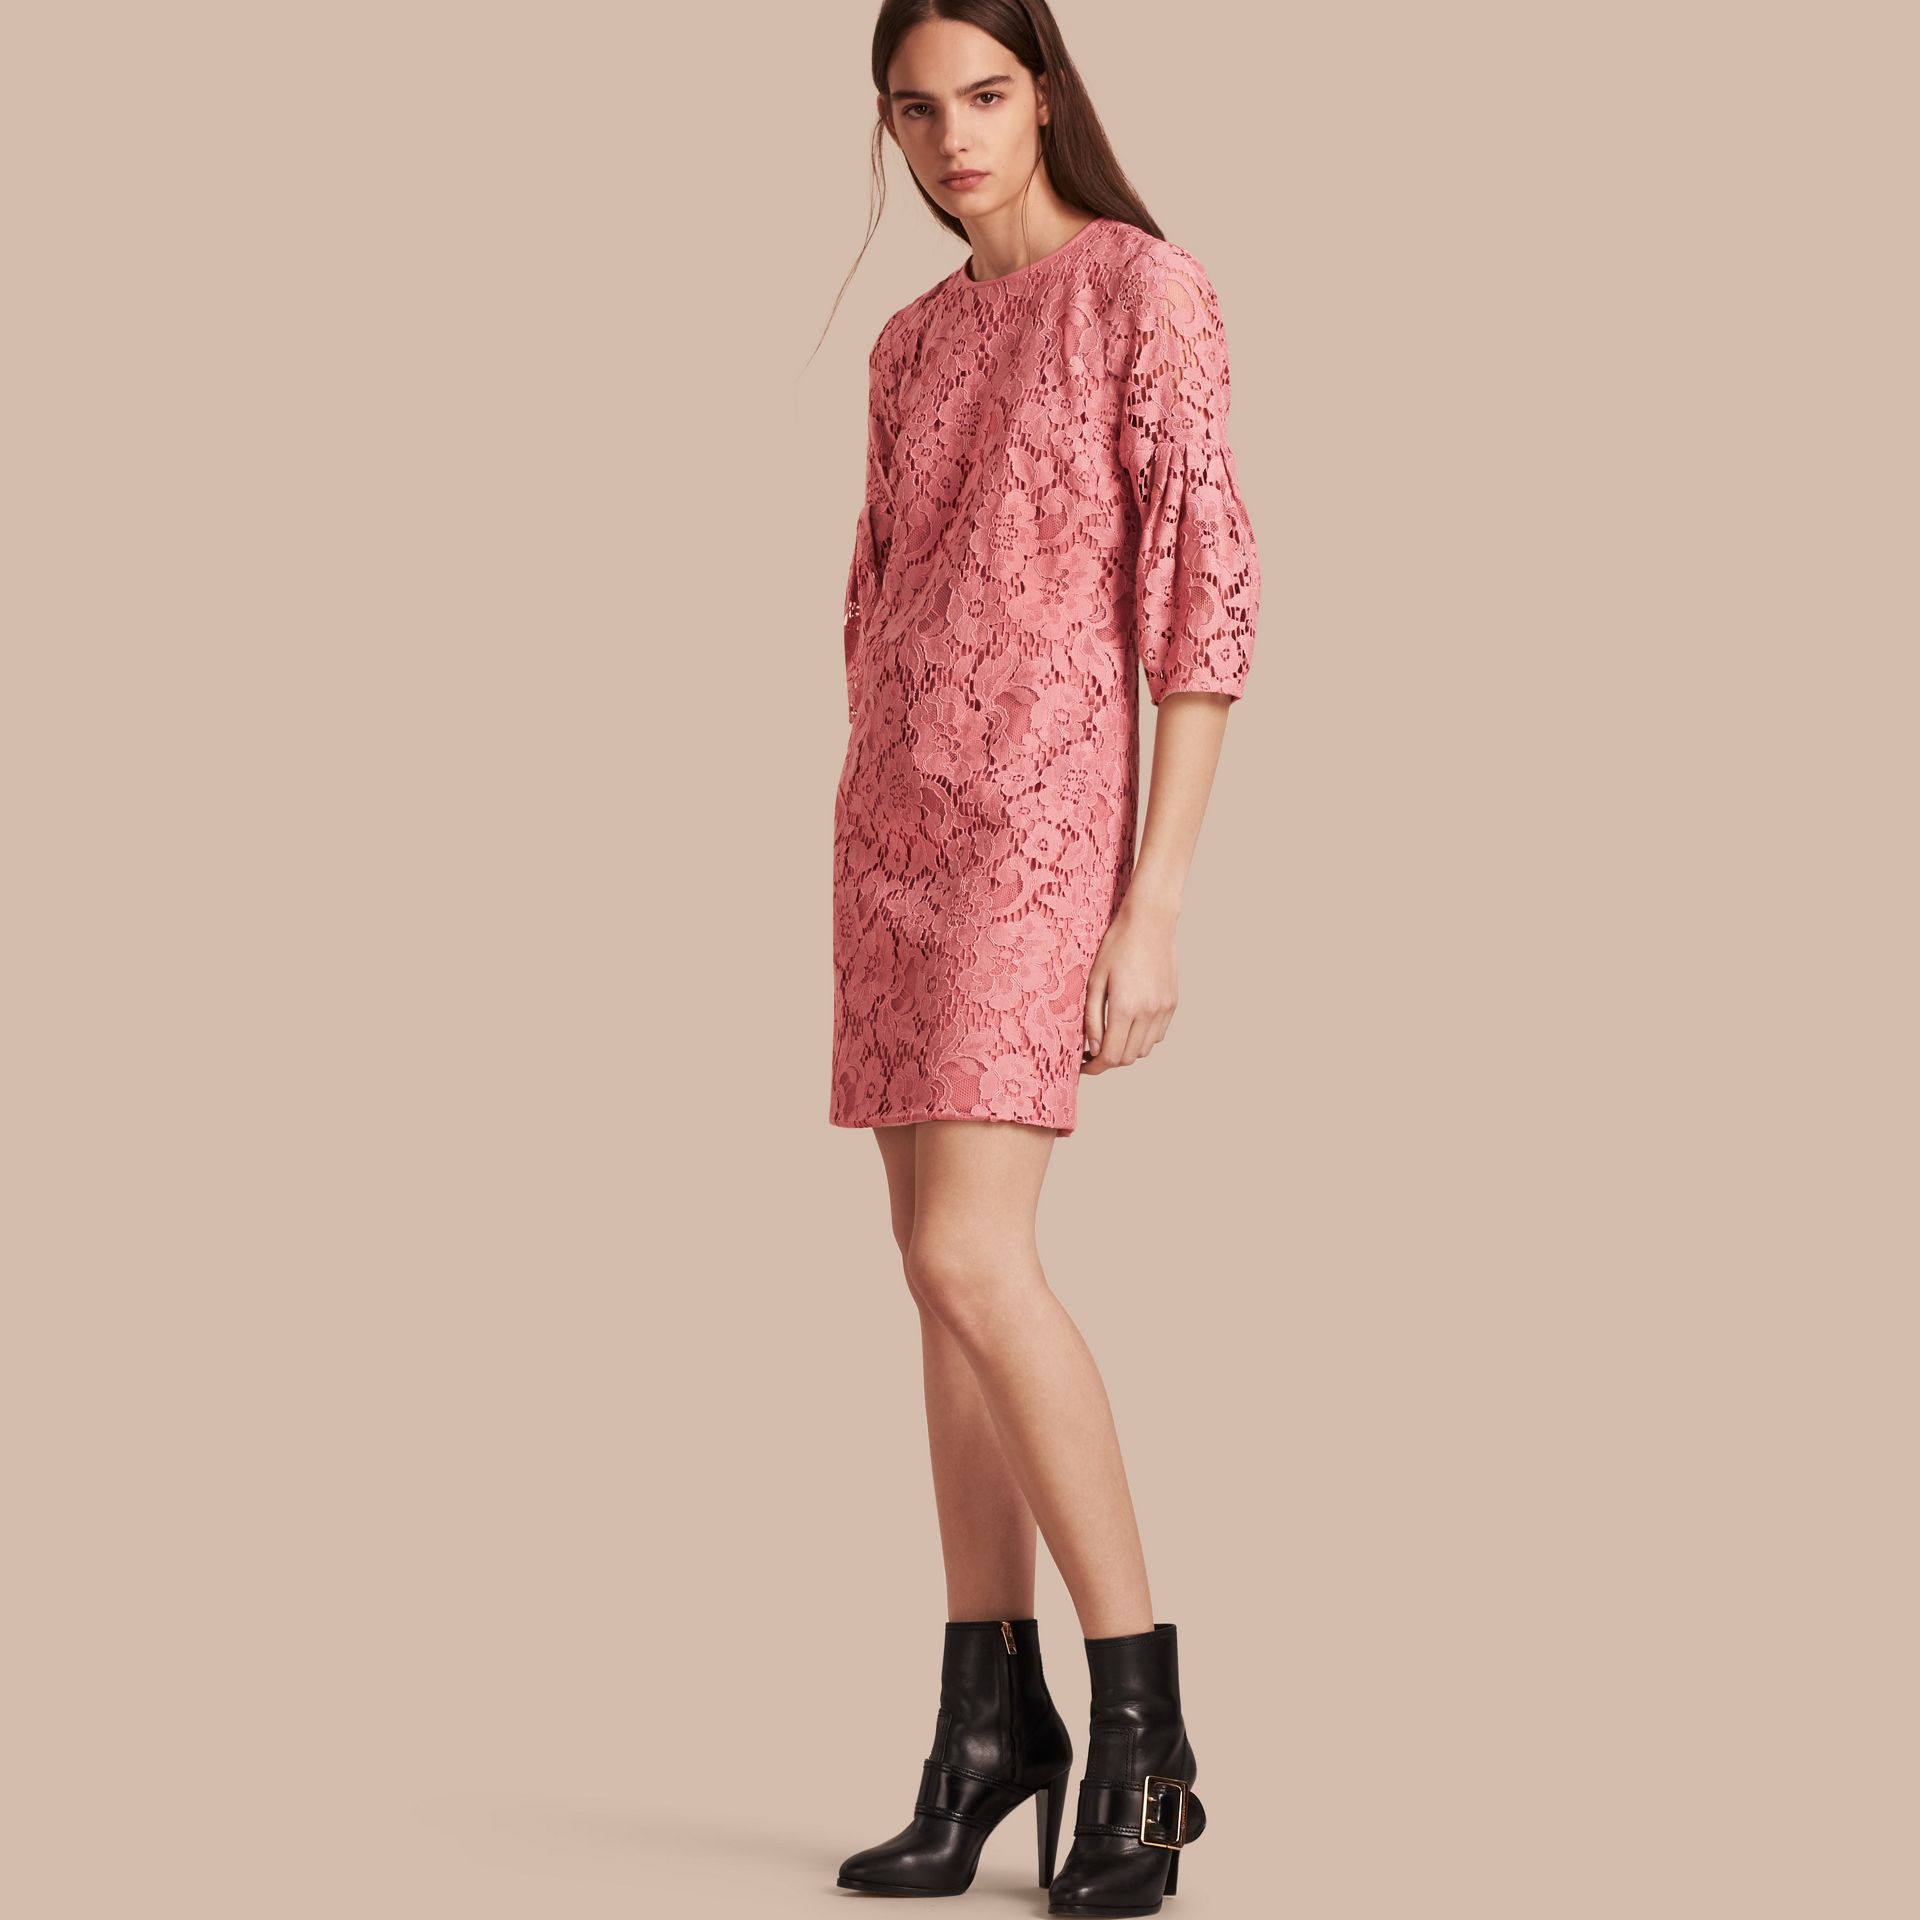 Antique rose Puff-sleeved Floral Lace Shift Dress Antique Rose - gallery image 1